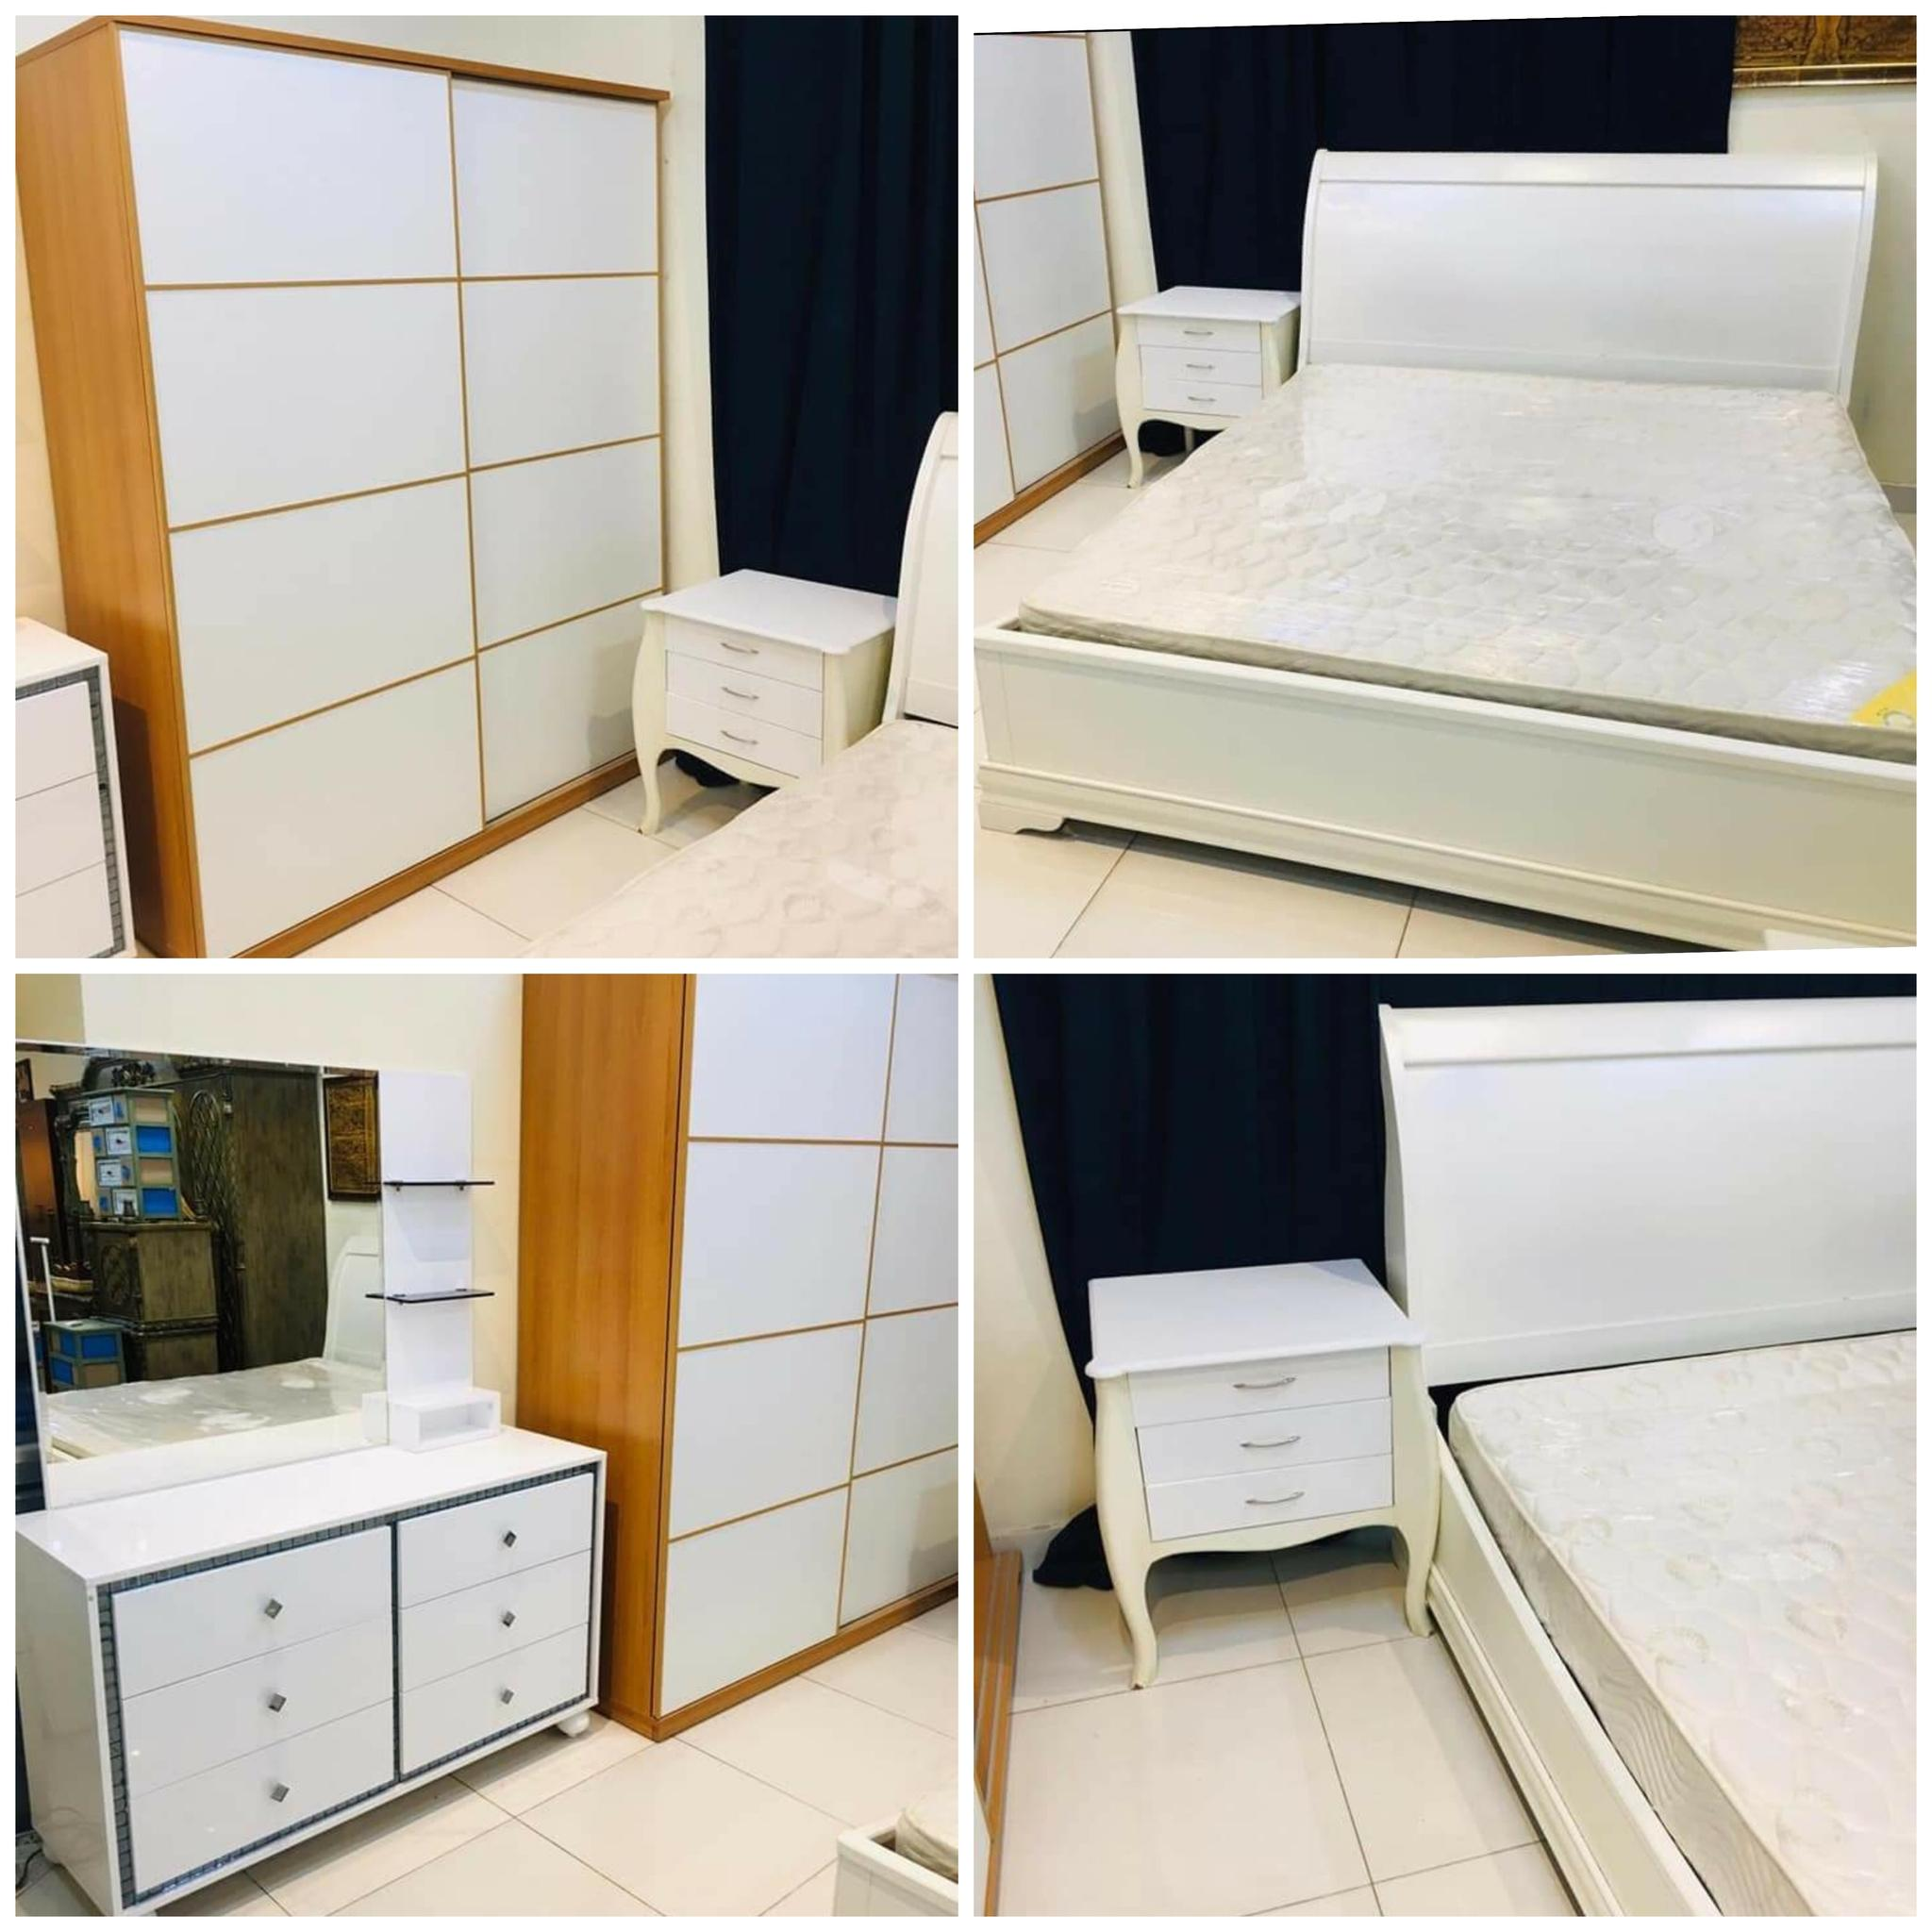 Used Furniture For Sale In Doha Qatar